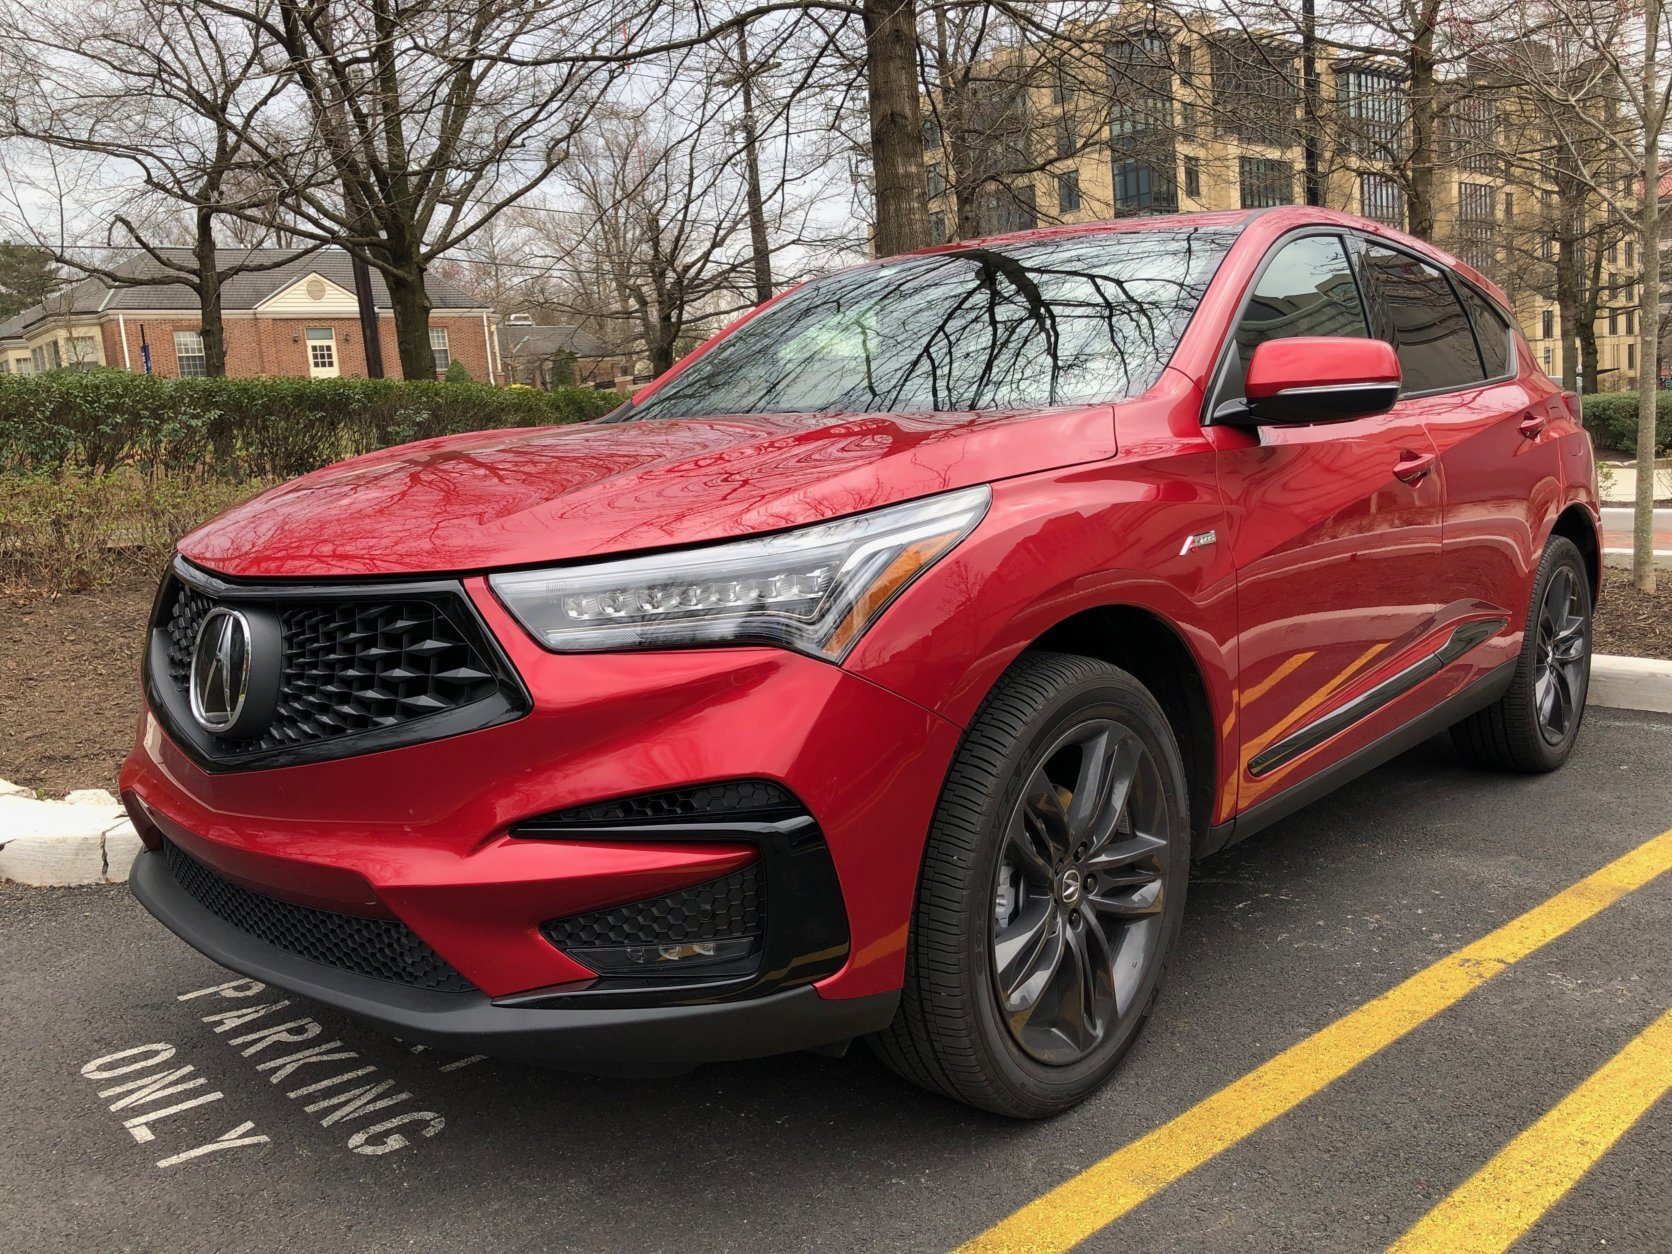 Front view of Acura RDX